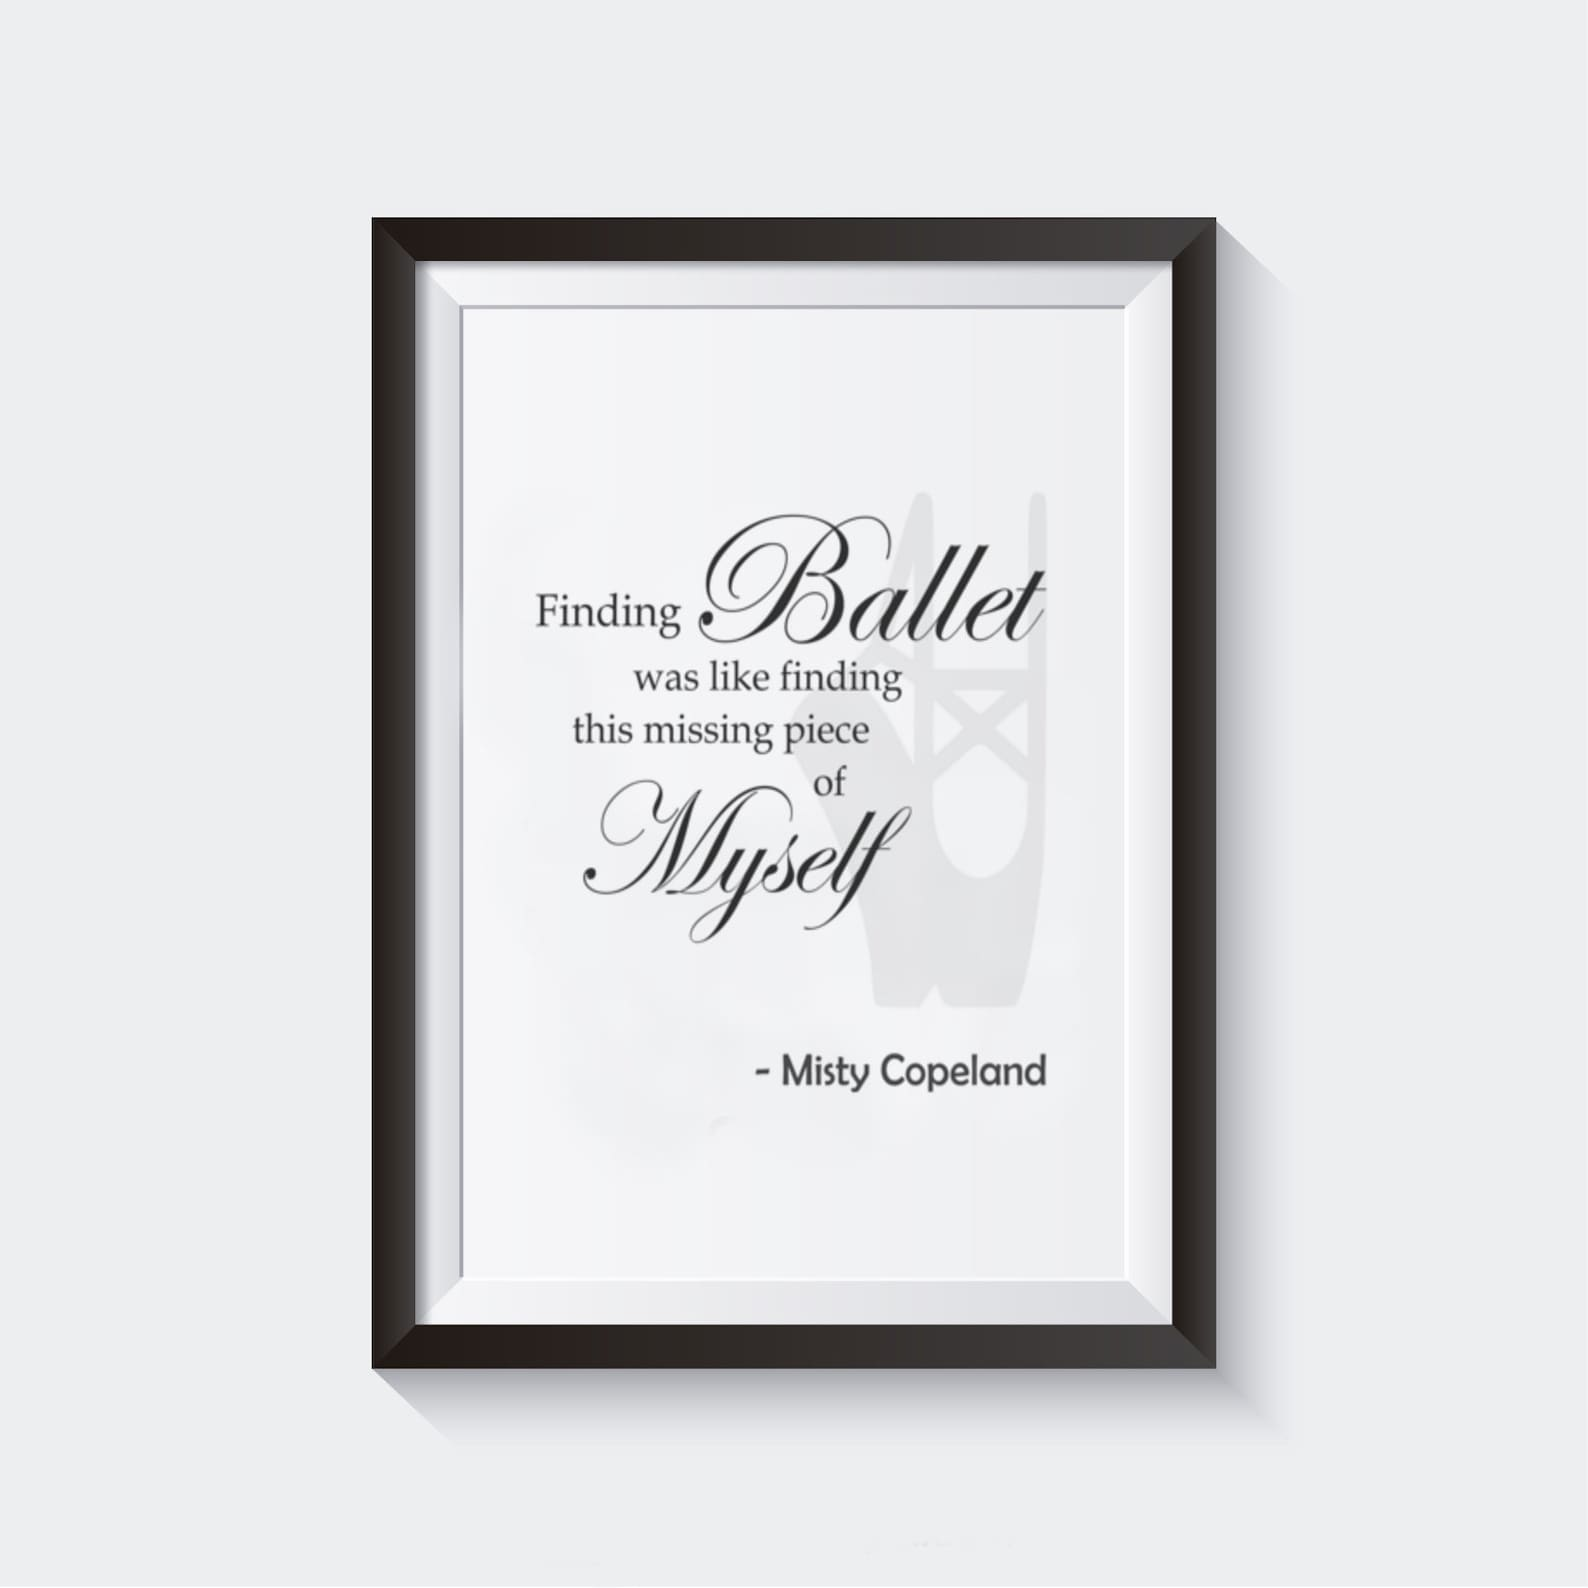 ballet quotes, misty copeland quotes, ballet svg, ballerina quotes, ballerina, ballet lover, ballet photo, ballet print, ballet